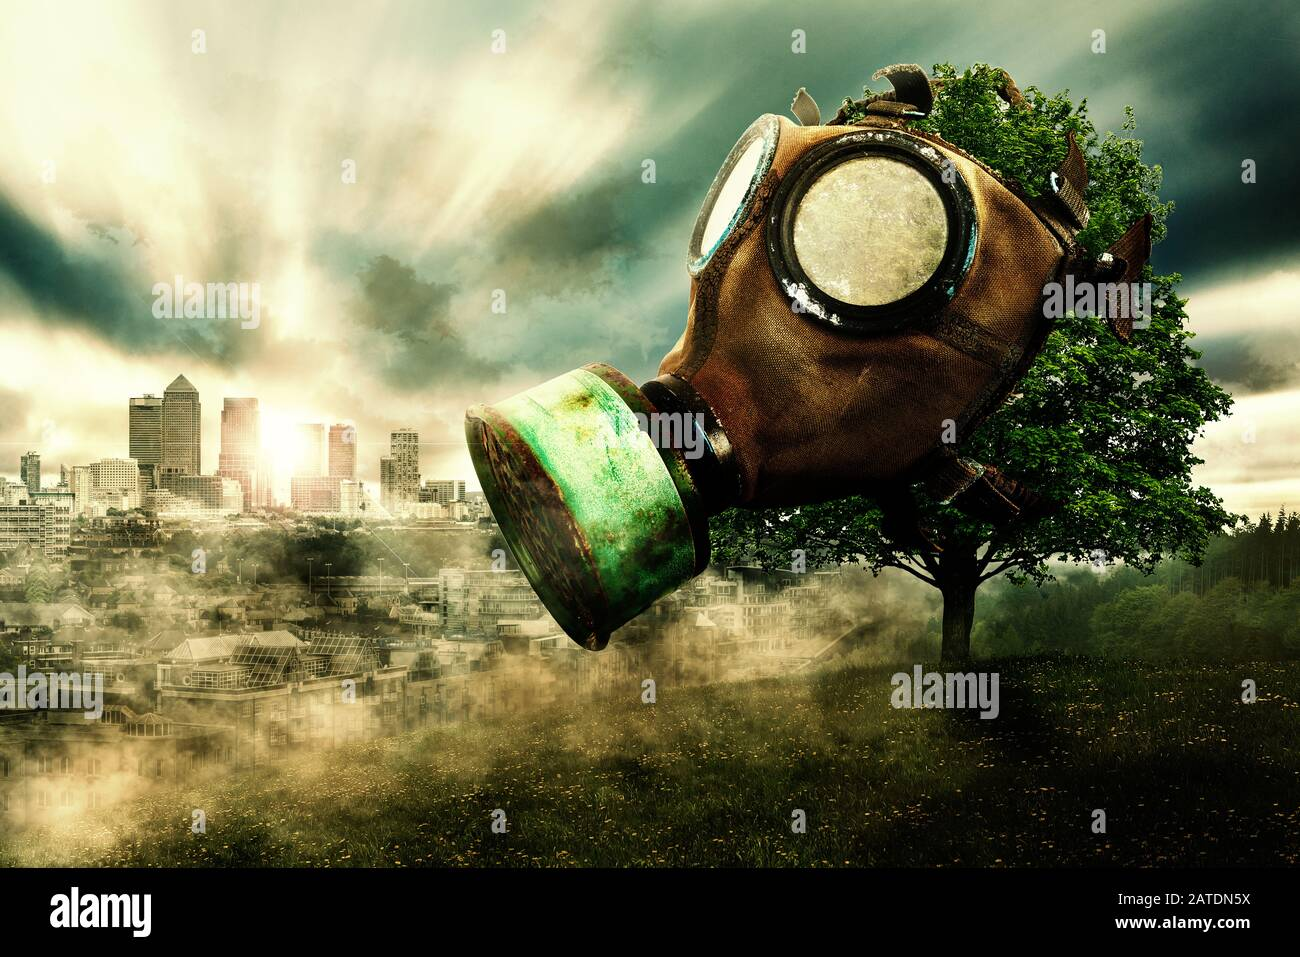 Tree with gas mask, background with city in smog, global warming due to air pollution Stock Photo